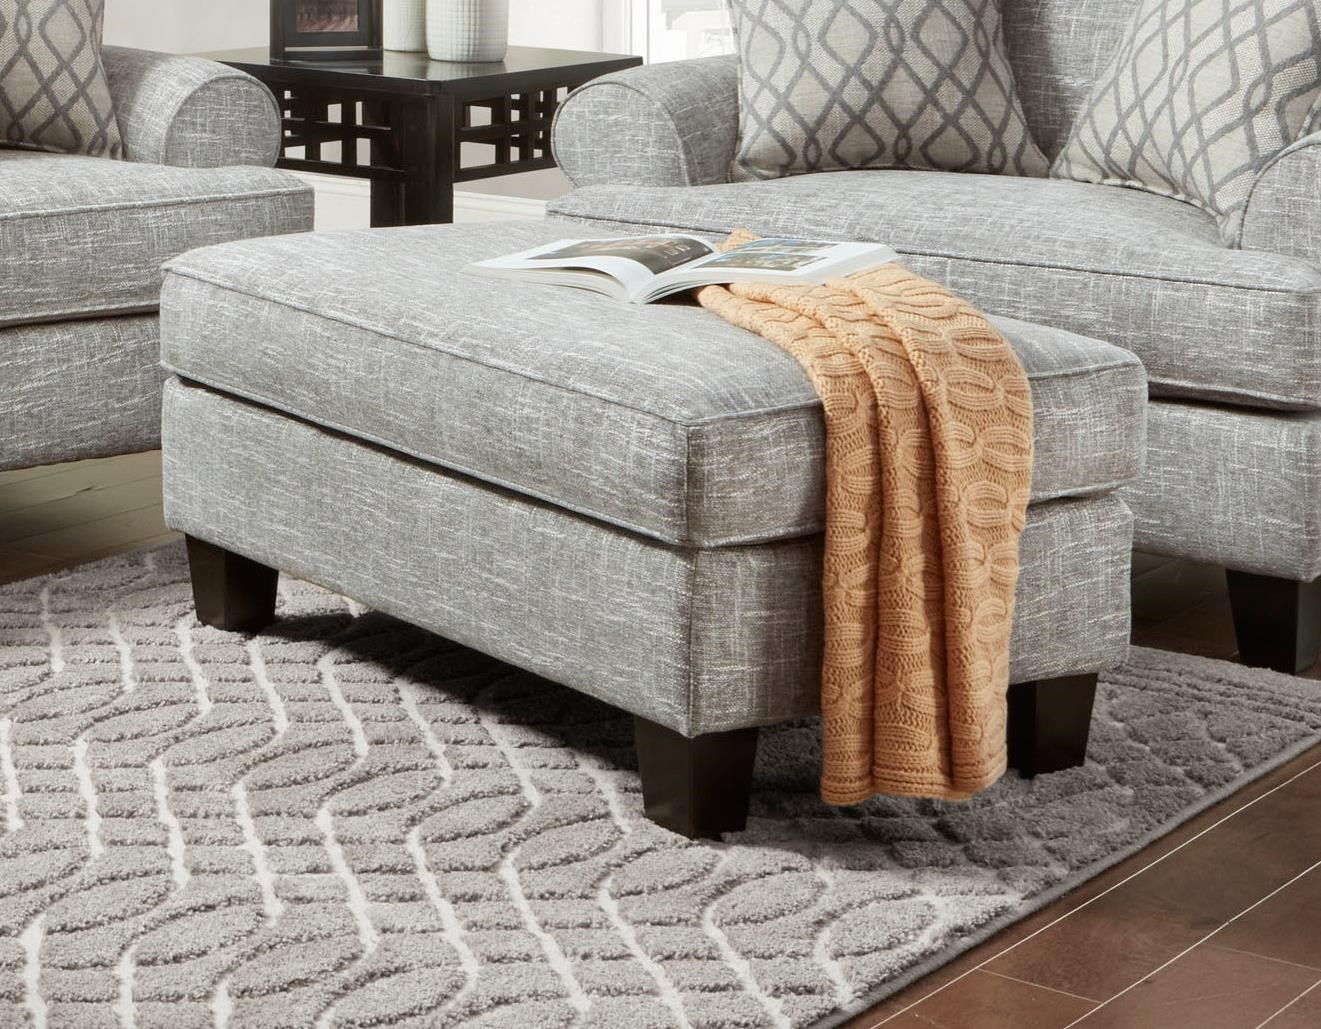 Fenwick 2019 Manchester Ottoman by J Furniture at Johnny Janosik